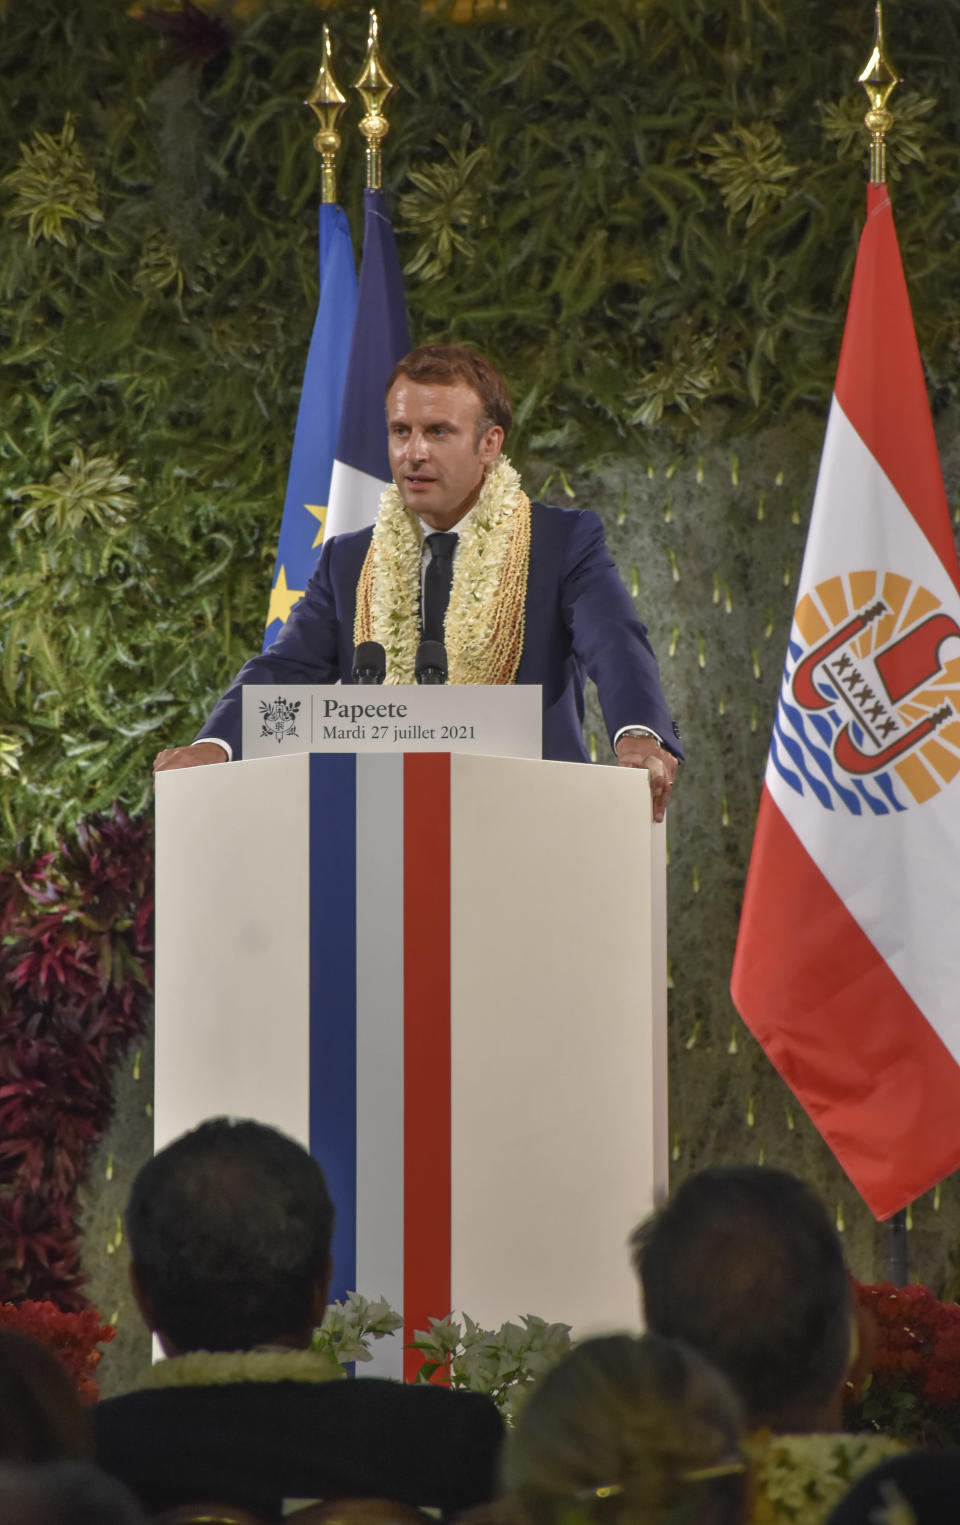 France's President Emmanuel Macron wearing a flower lei and seashell necklaces delivers a speech after a meeting with the President of the French Polynesia Edouard Fritch in Tahiti, French Polynesia in the Pacific Ocean, Tuesday, 27, 2021.President Emmanuel Macron reasserted France's presence in the Pacific on a visit to French Polynesia aimed in part at countering growing Chinese dominance in the region. (AP Photo/Esther Cuneo)